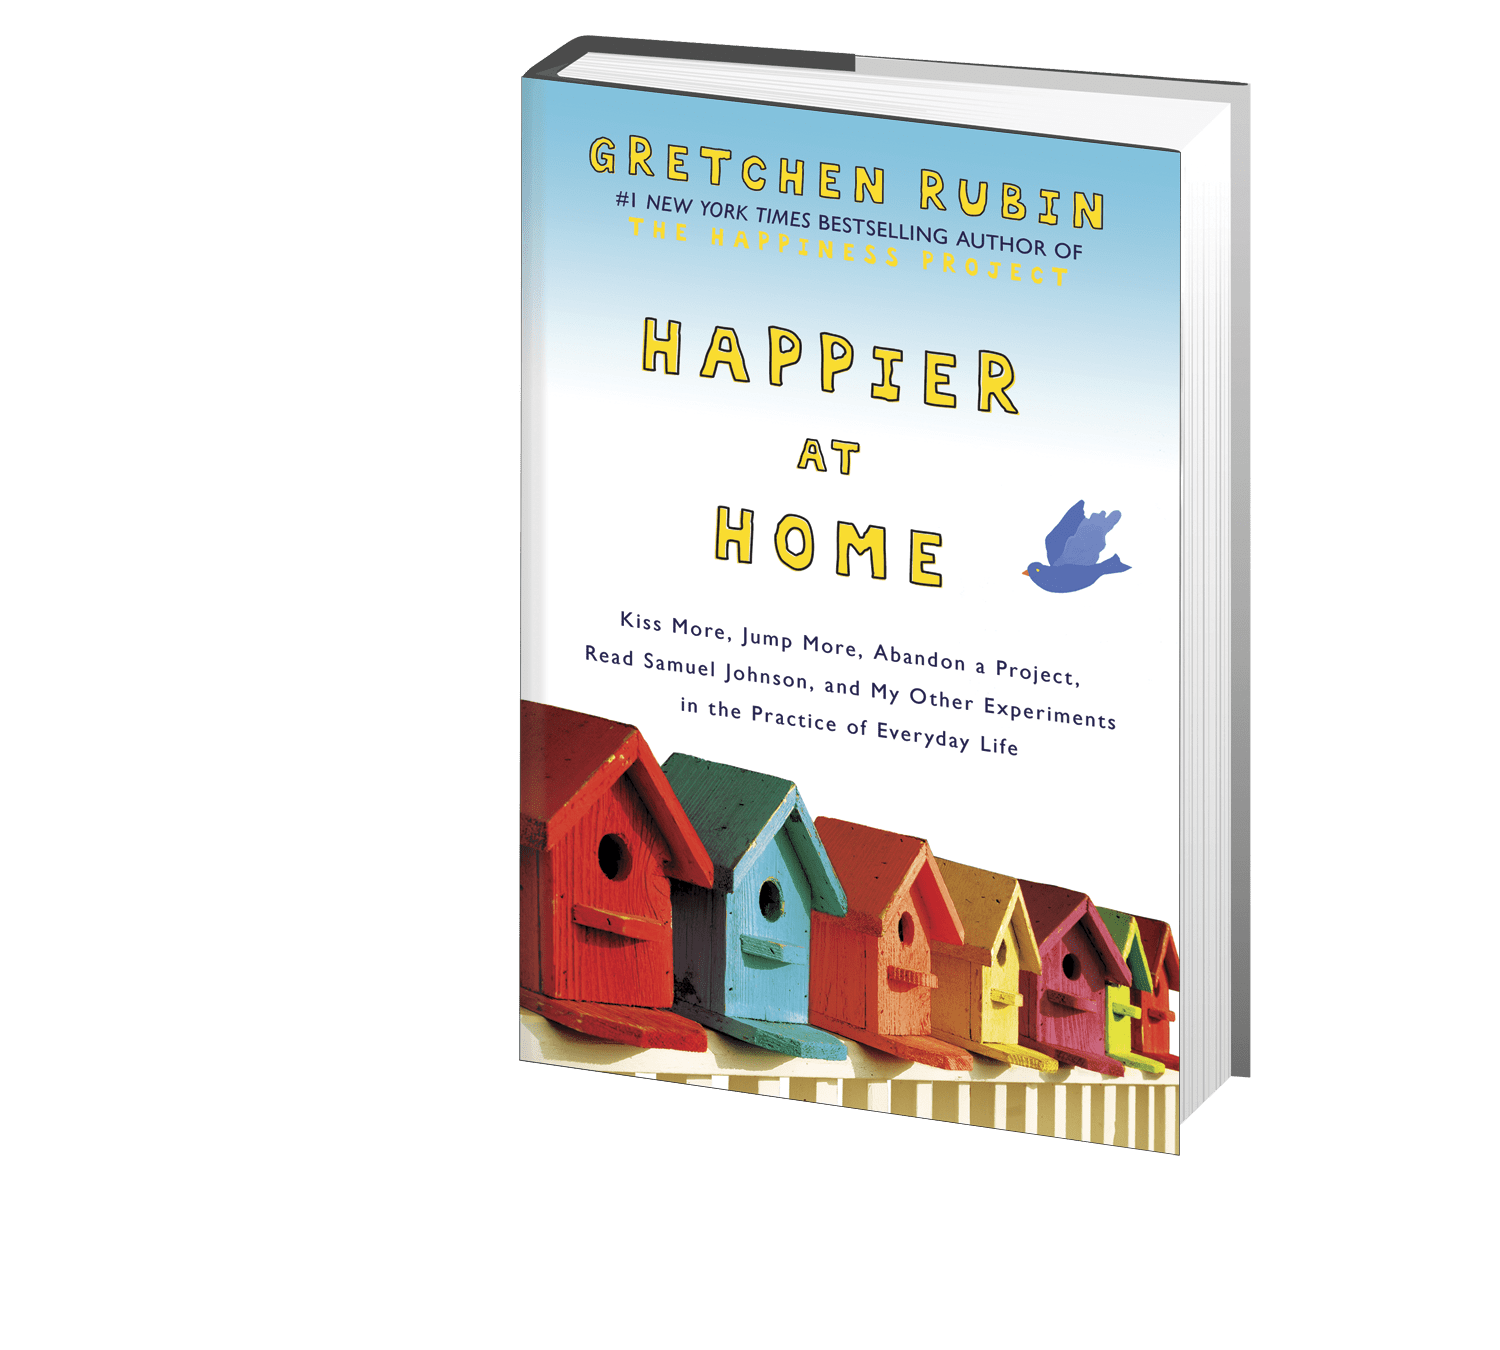 I'm So Happy! HAPPIER AT HOME Hit the New York Times Bestseller List! #2!